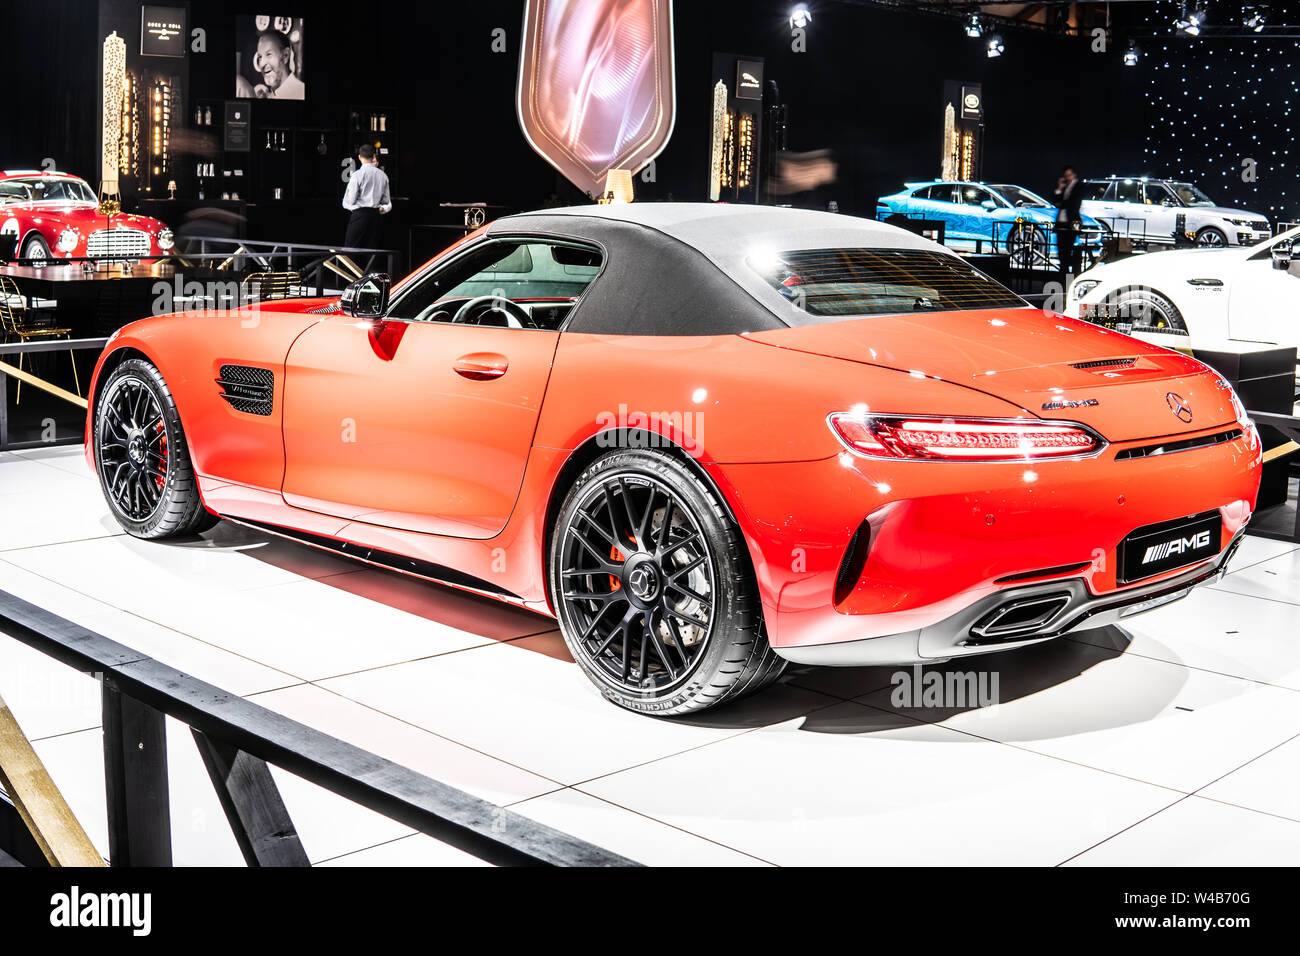 Brussels Belgium Jan 2019 Metallic Red Mercedes Amg Gt C Roadster Brussels Motor Show Dream Cars Luxury Sport Car Produced By Mercedes Benz Stock Photo Alamy